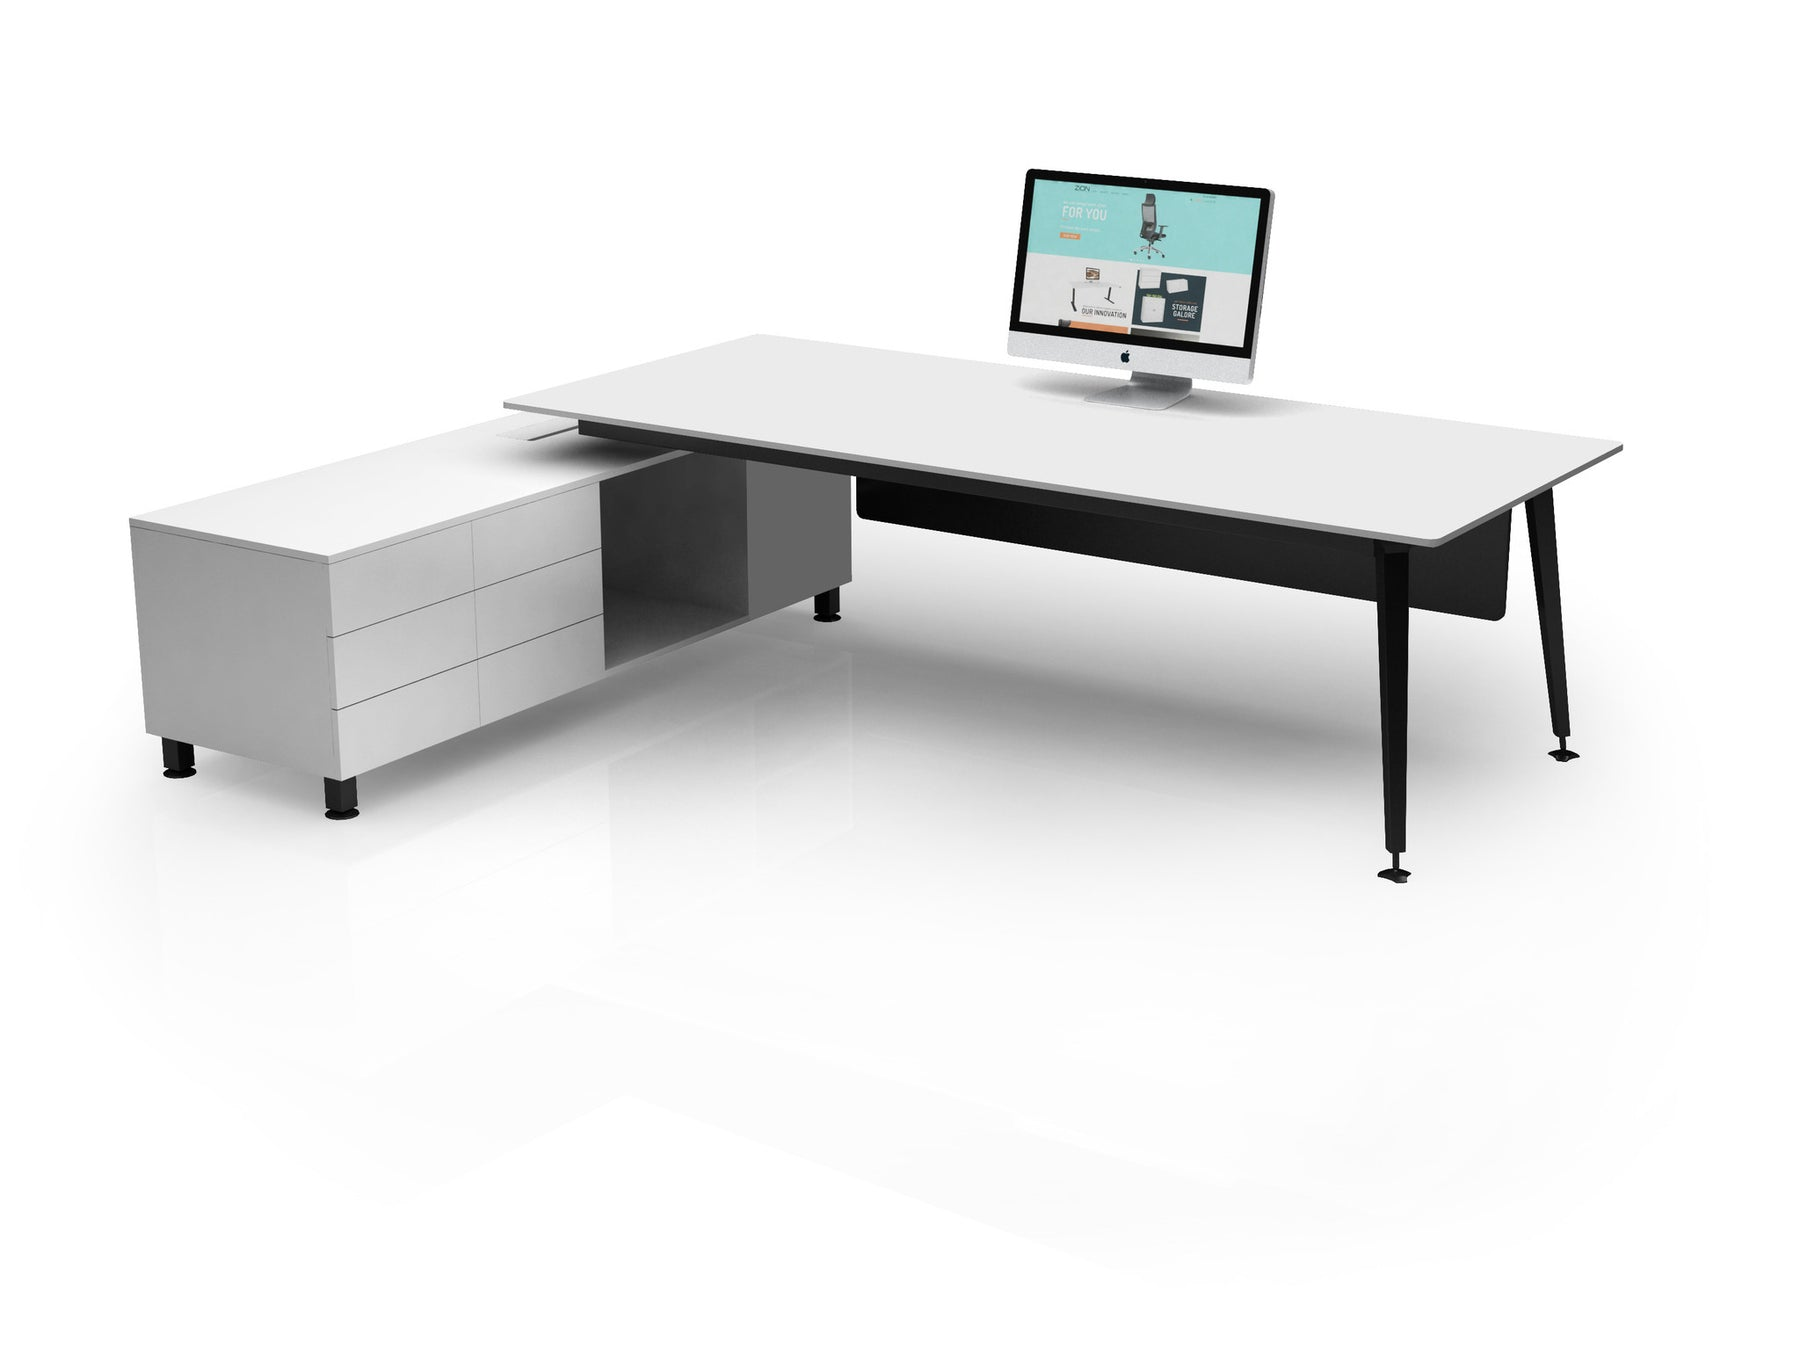 plus desks benefits of rug drawers great chair desk top office corner gray veneer also swivel and stylish storage feats furniture for